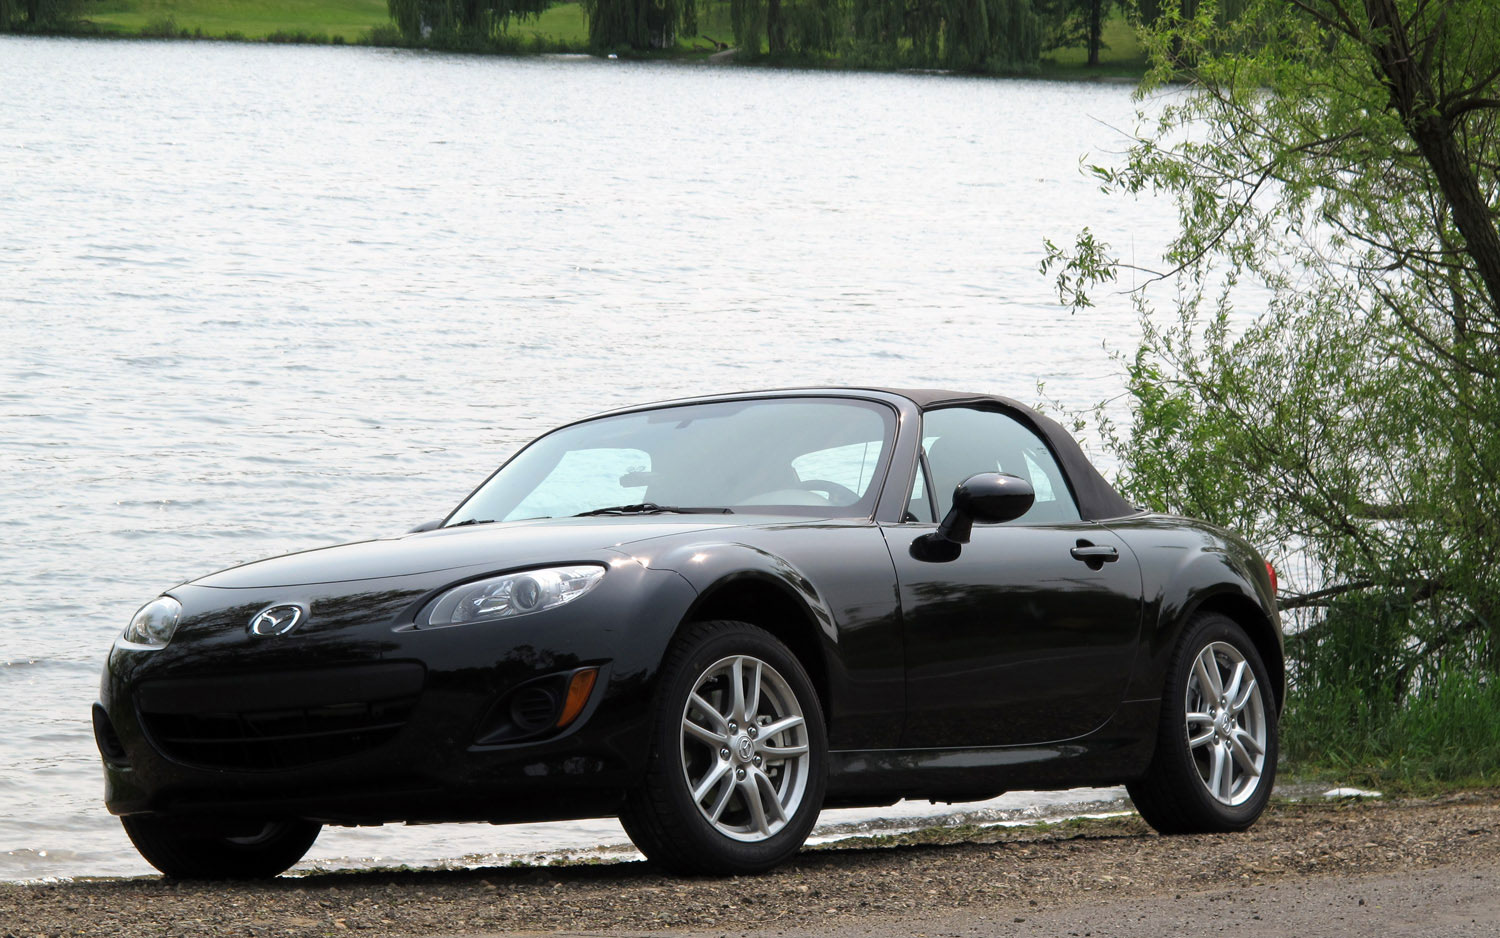 2011 Mazda Mx 5 Miata Front Left View Parked By Water